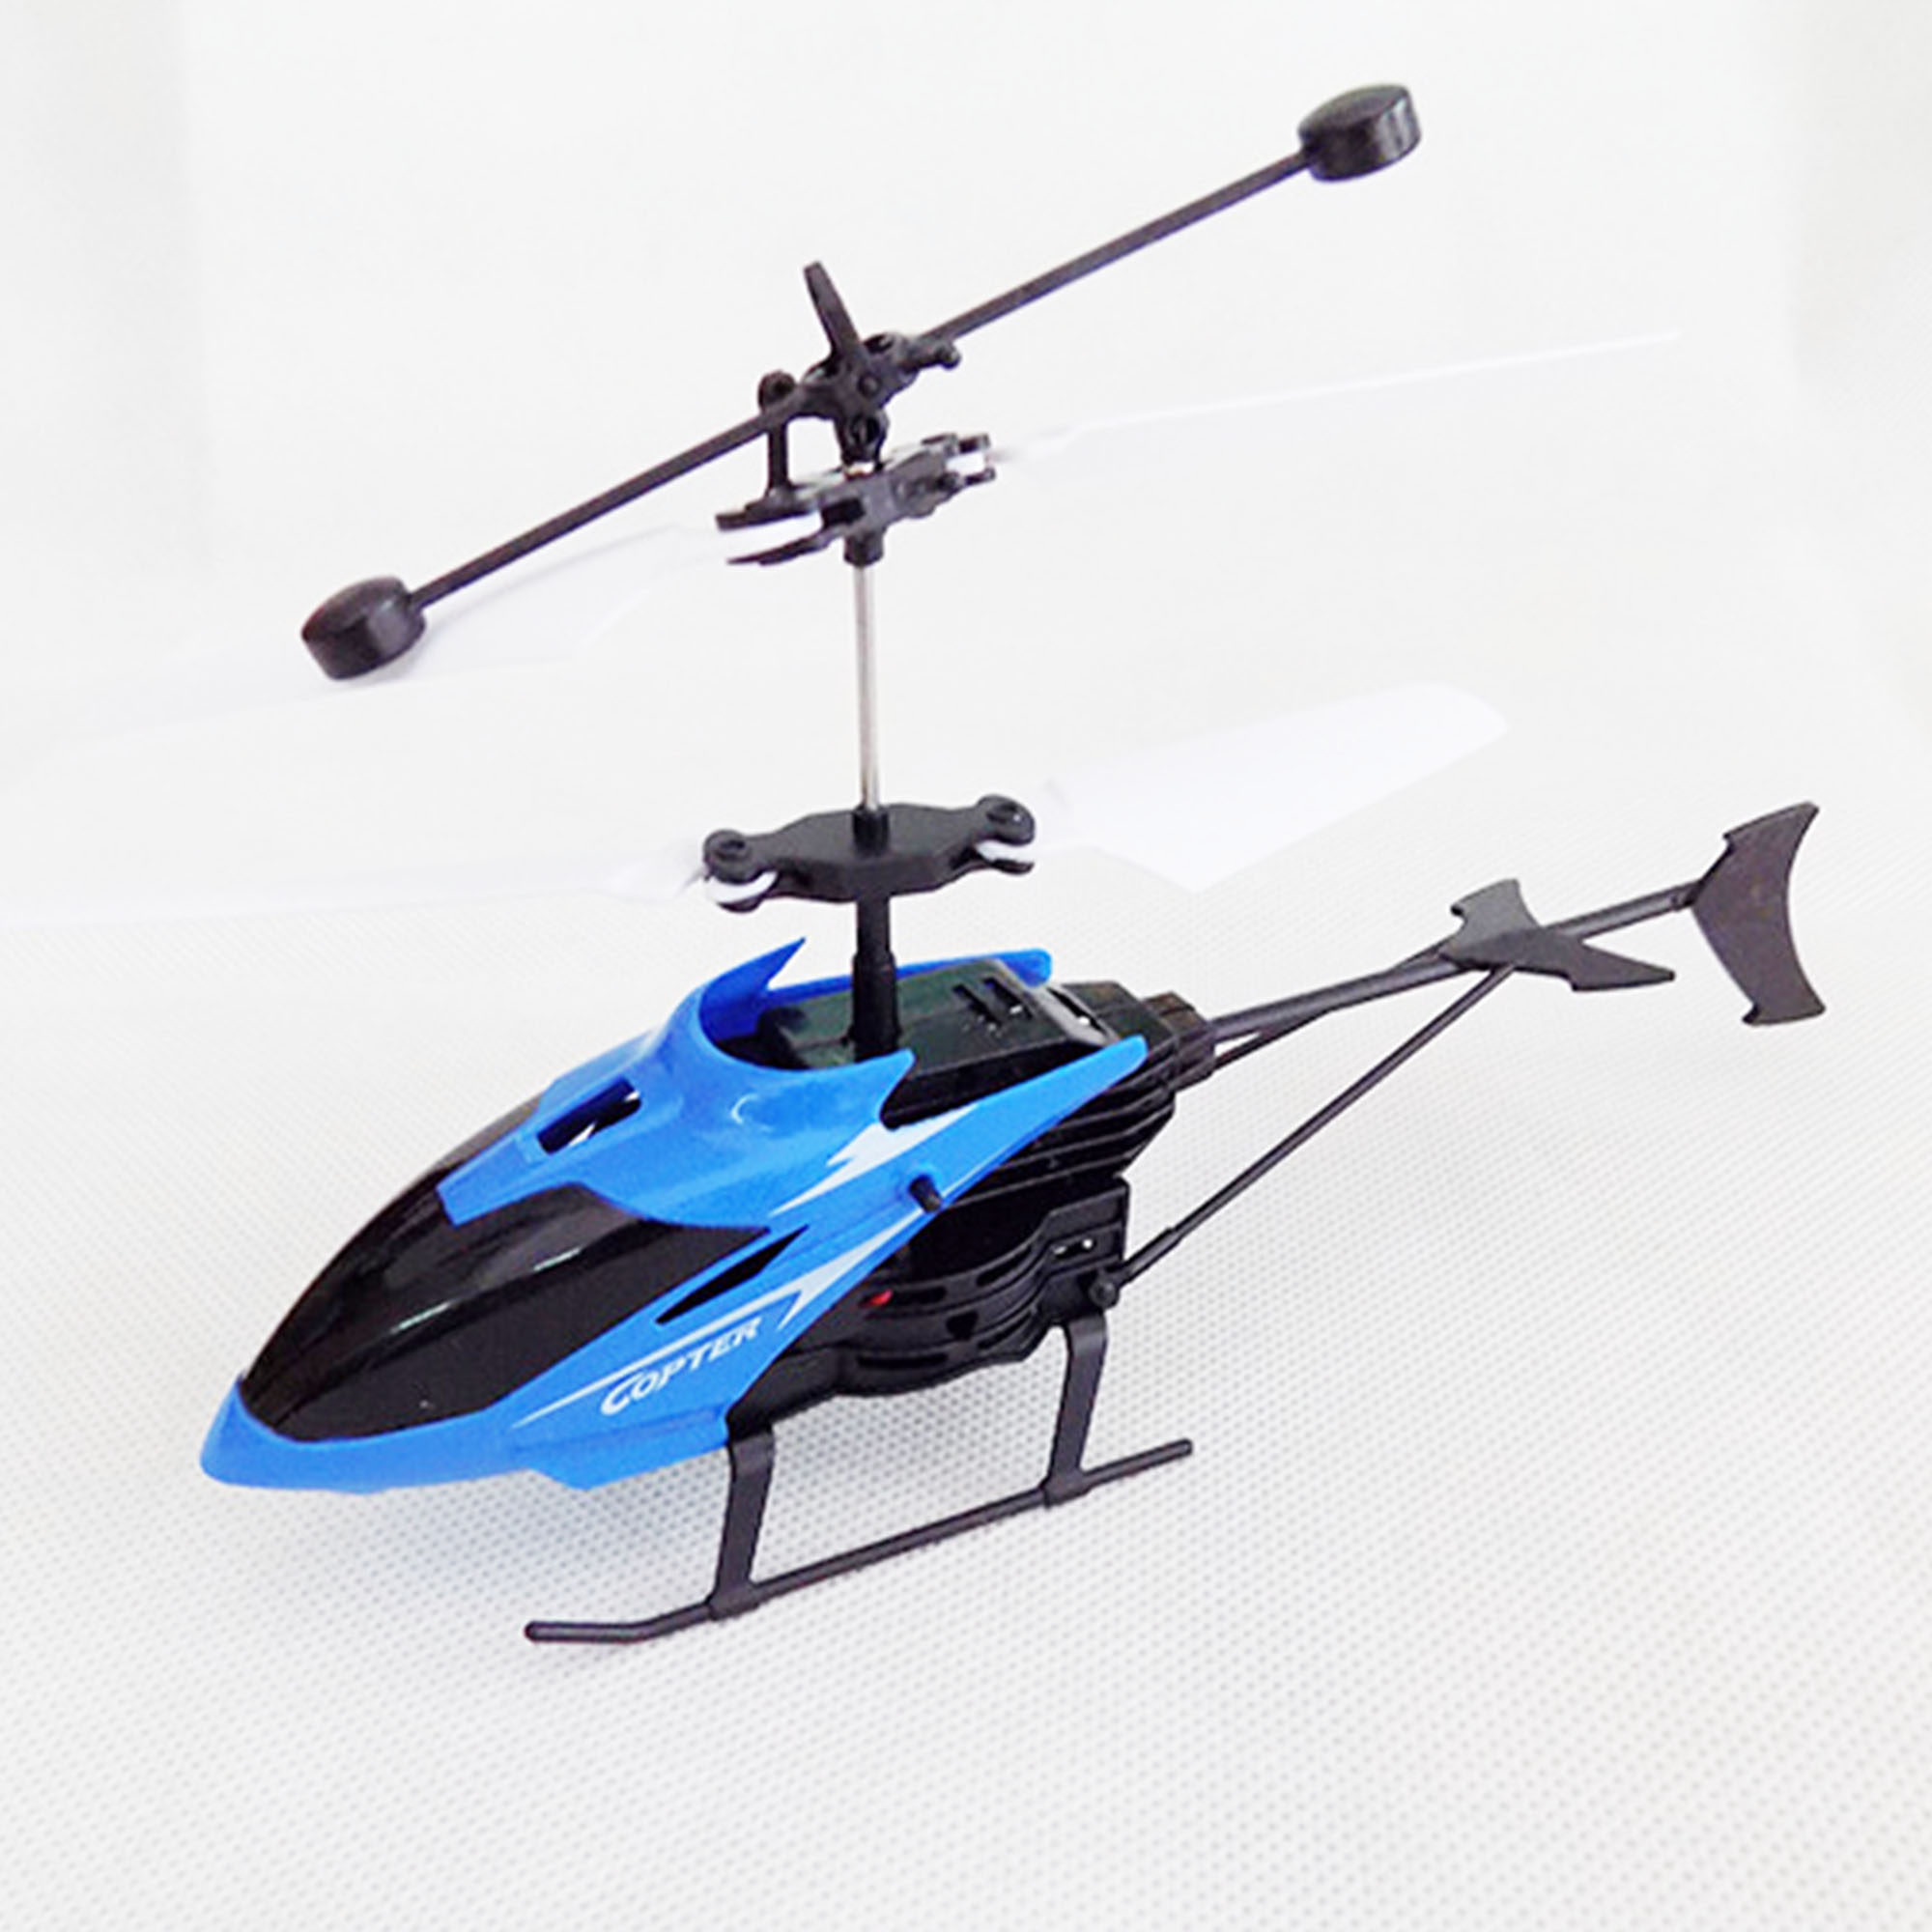 Helicopter with remote controller by Meulet